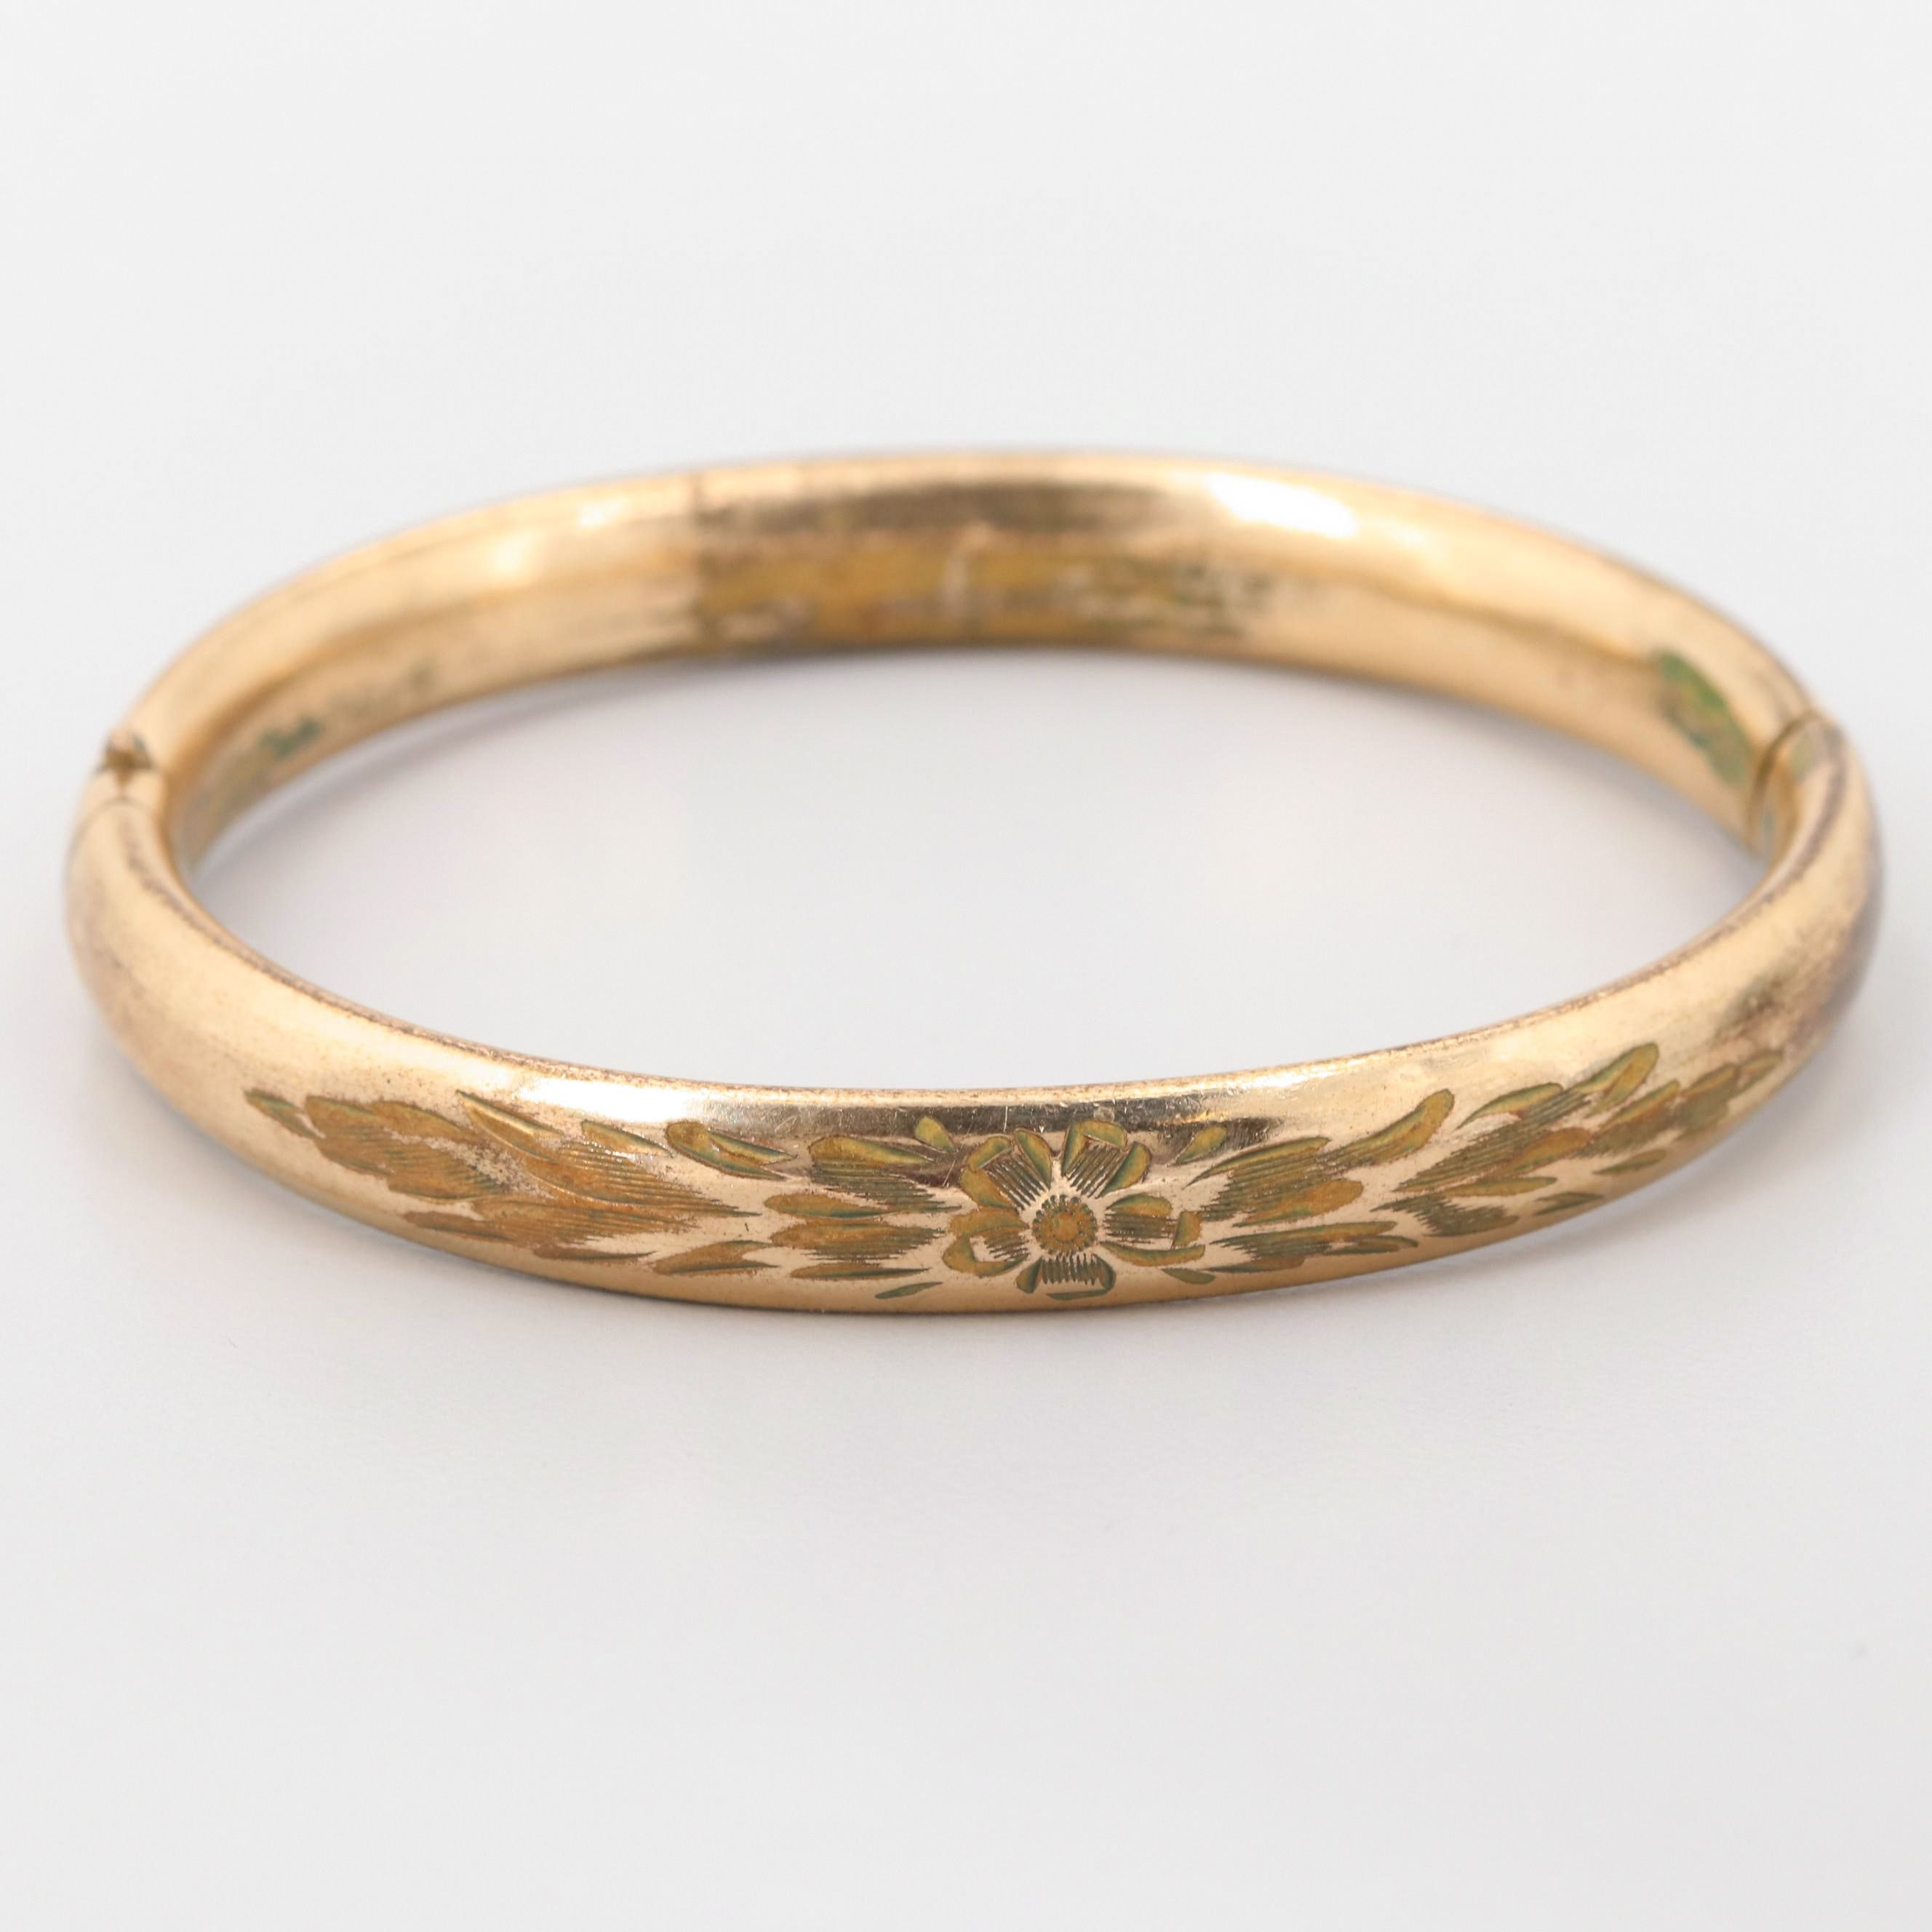 Gold Tone Bangle Bracelet with Floral Motif